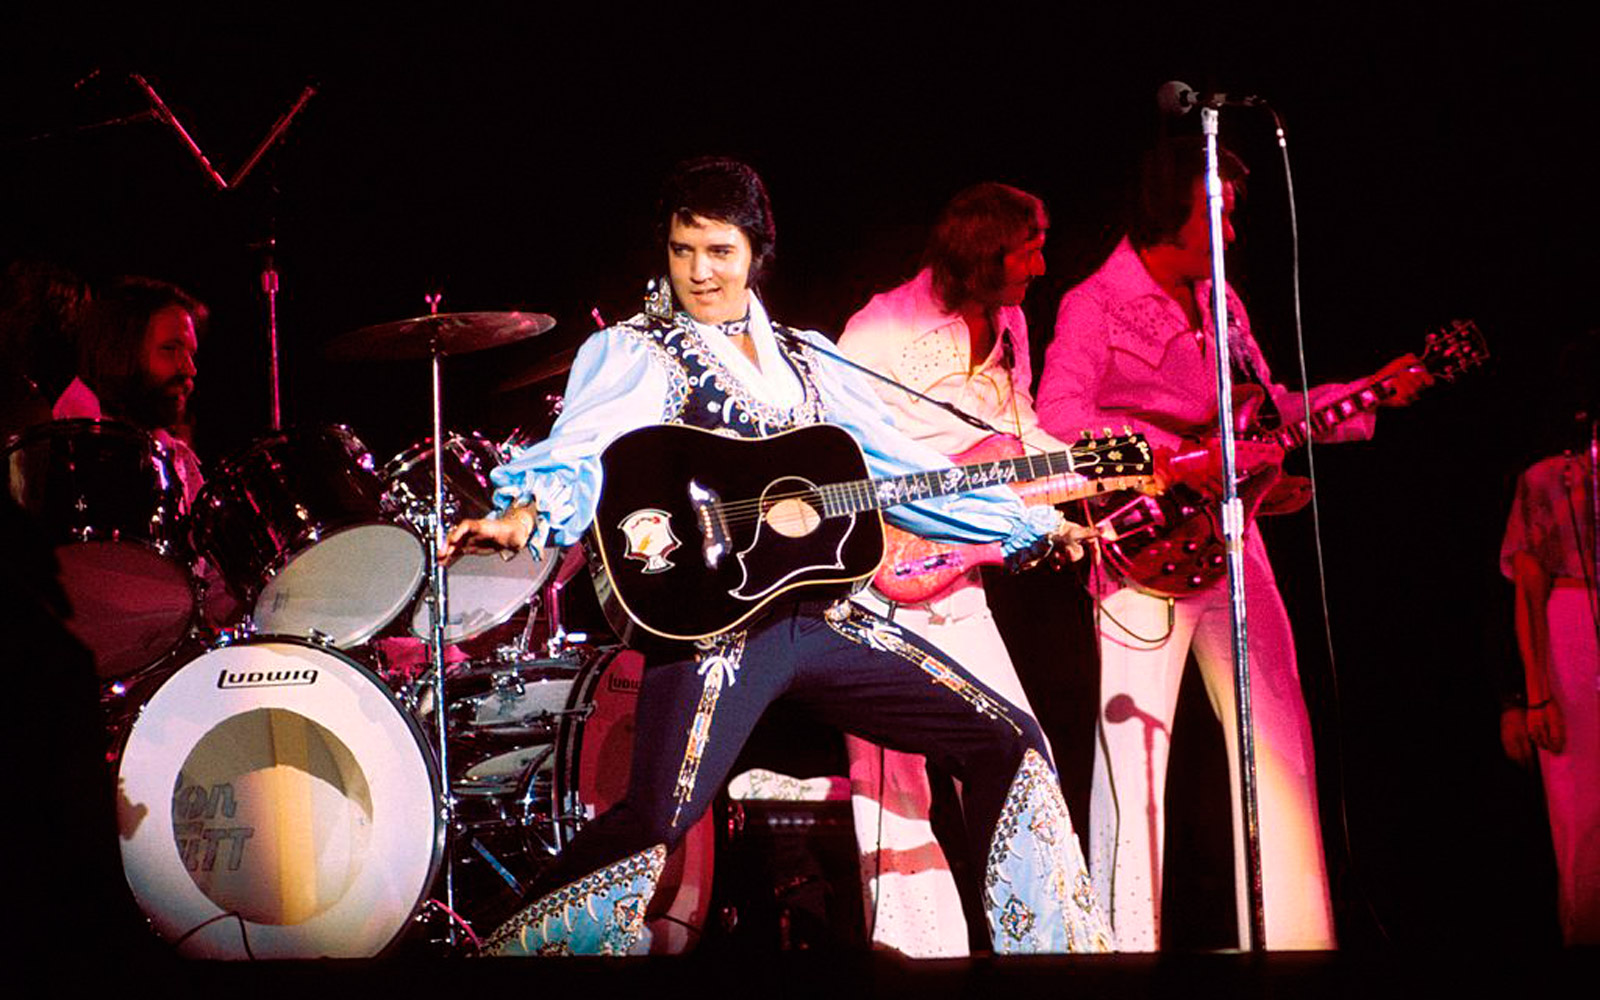 Elvis Presley Death Theories: Why Do Some Think He's Alive?